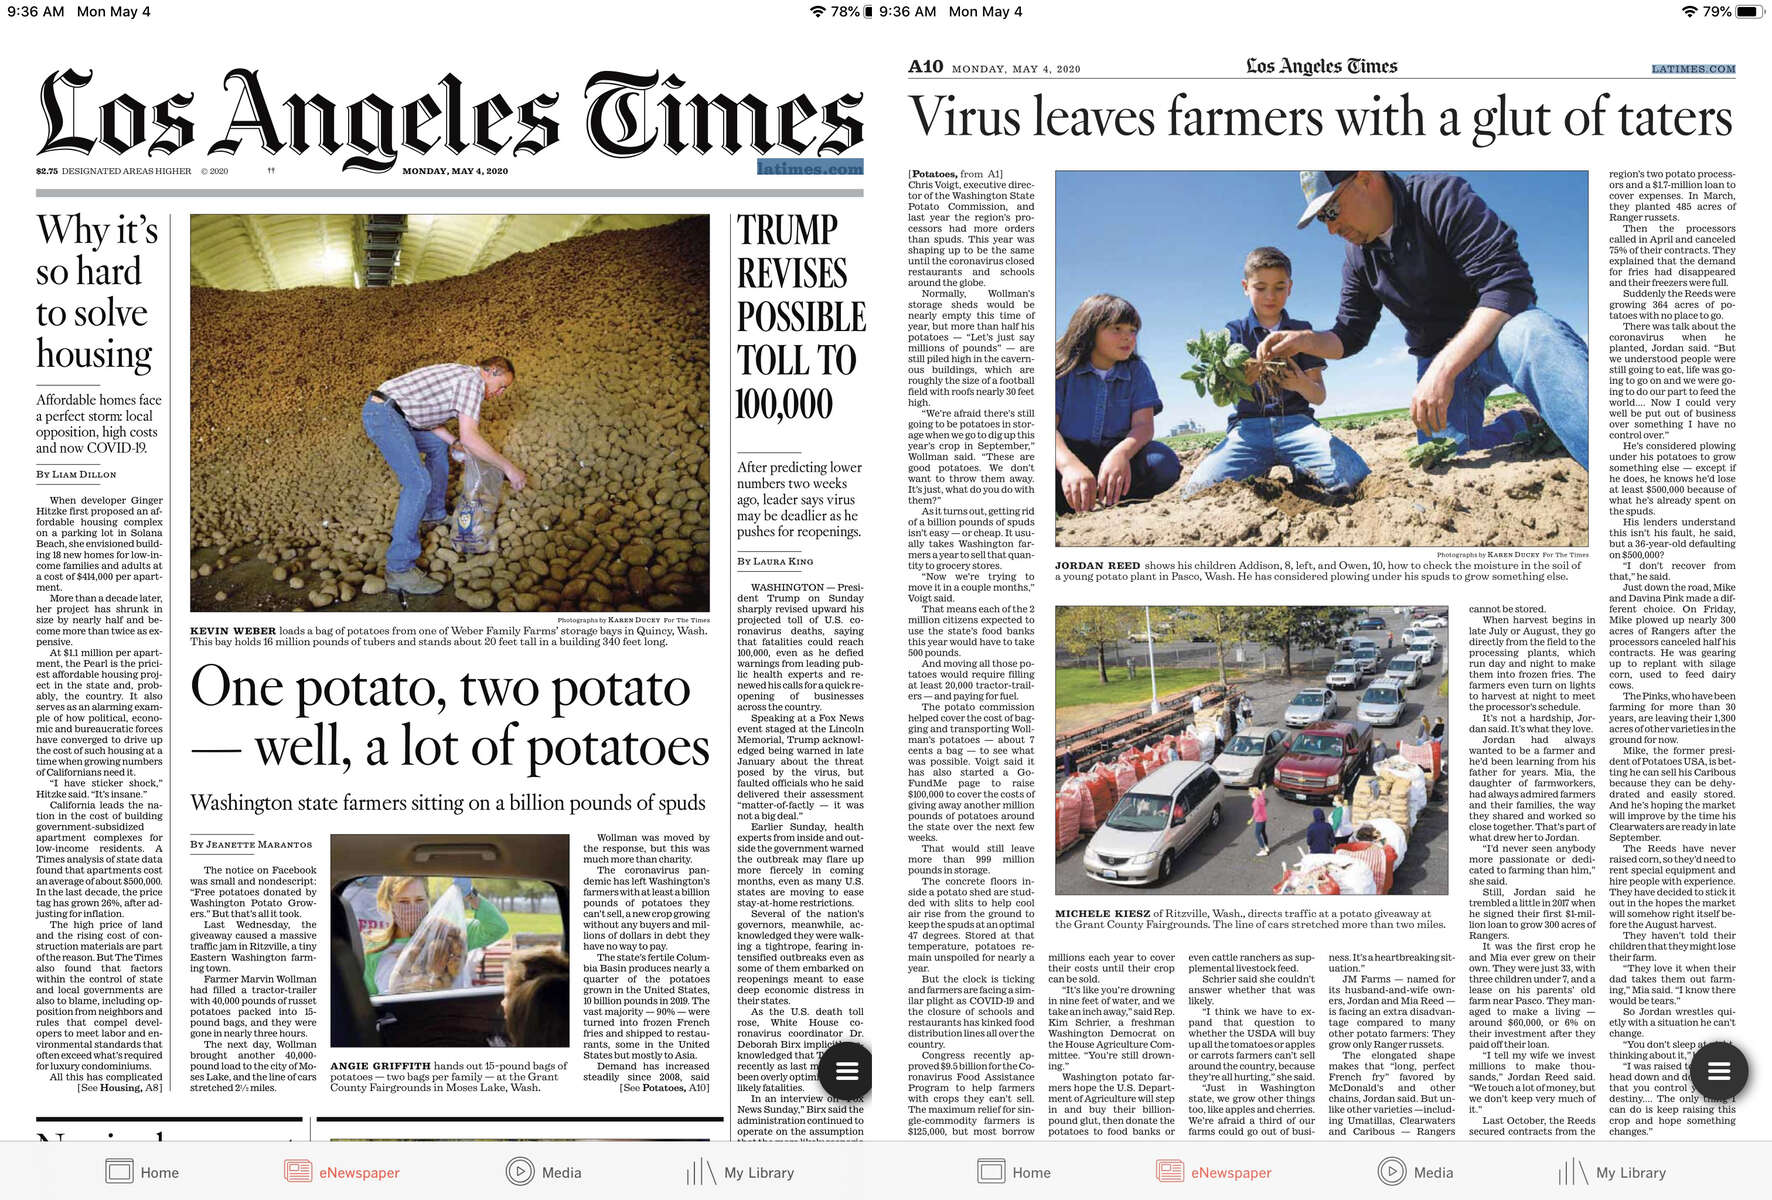 {quote}Coronavirus leaves Washington farmers with a big problem: What do you do with a billion pounds of potatoes?{quote} photos running on the cover and inside the Los Angeles Times. May 3, 2020.